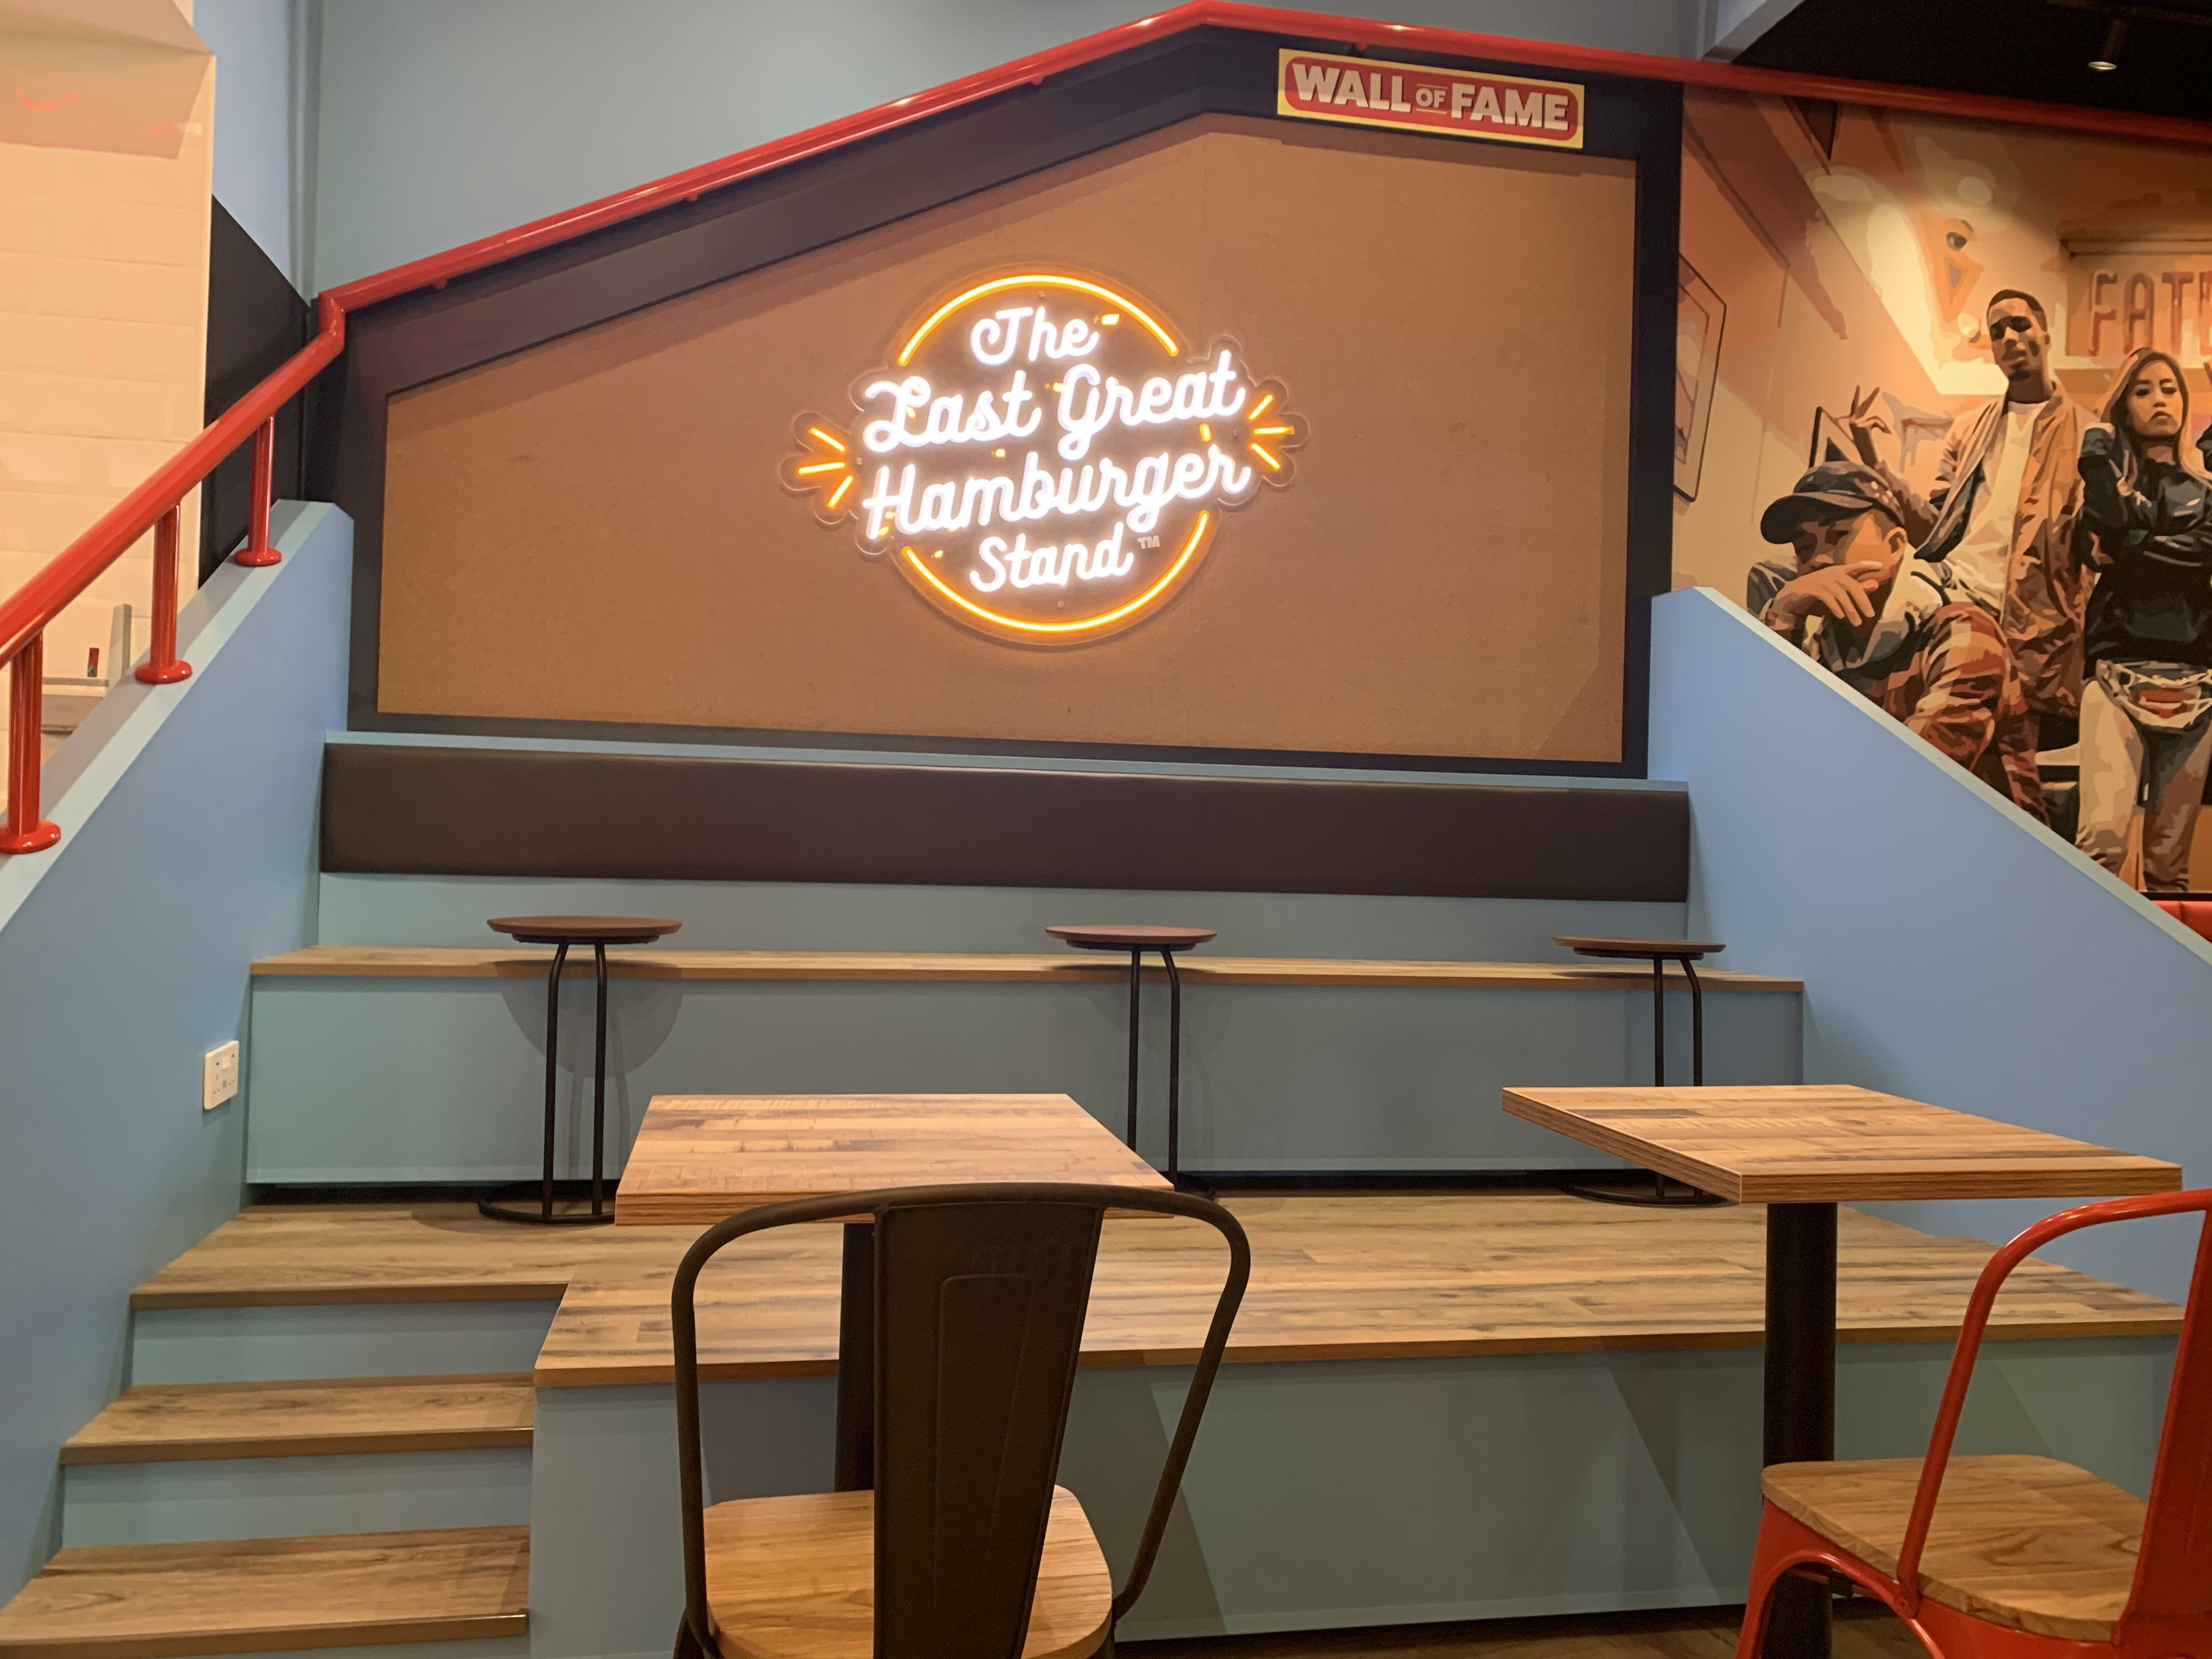 Fatburgers Wall of Fame Cineleisure Orchard Flagship store